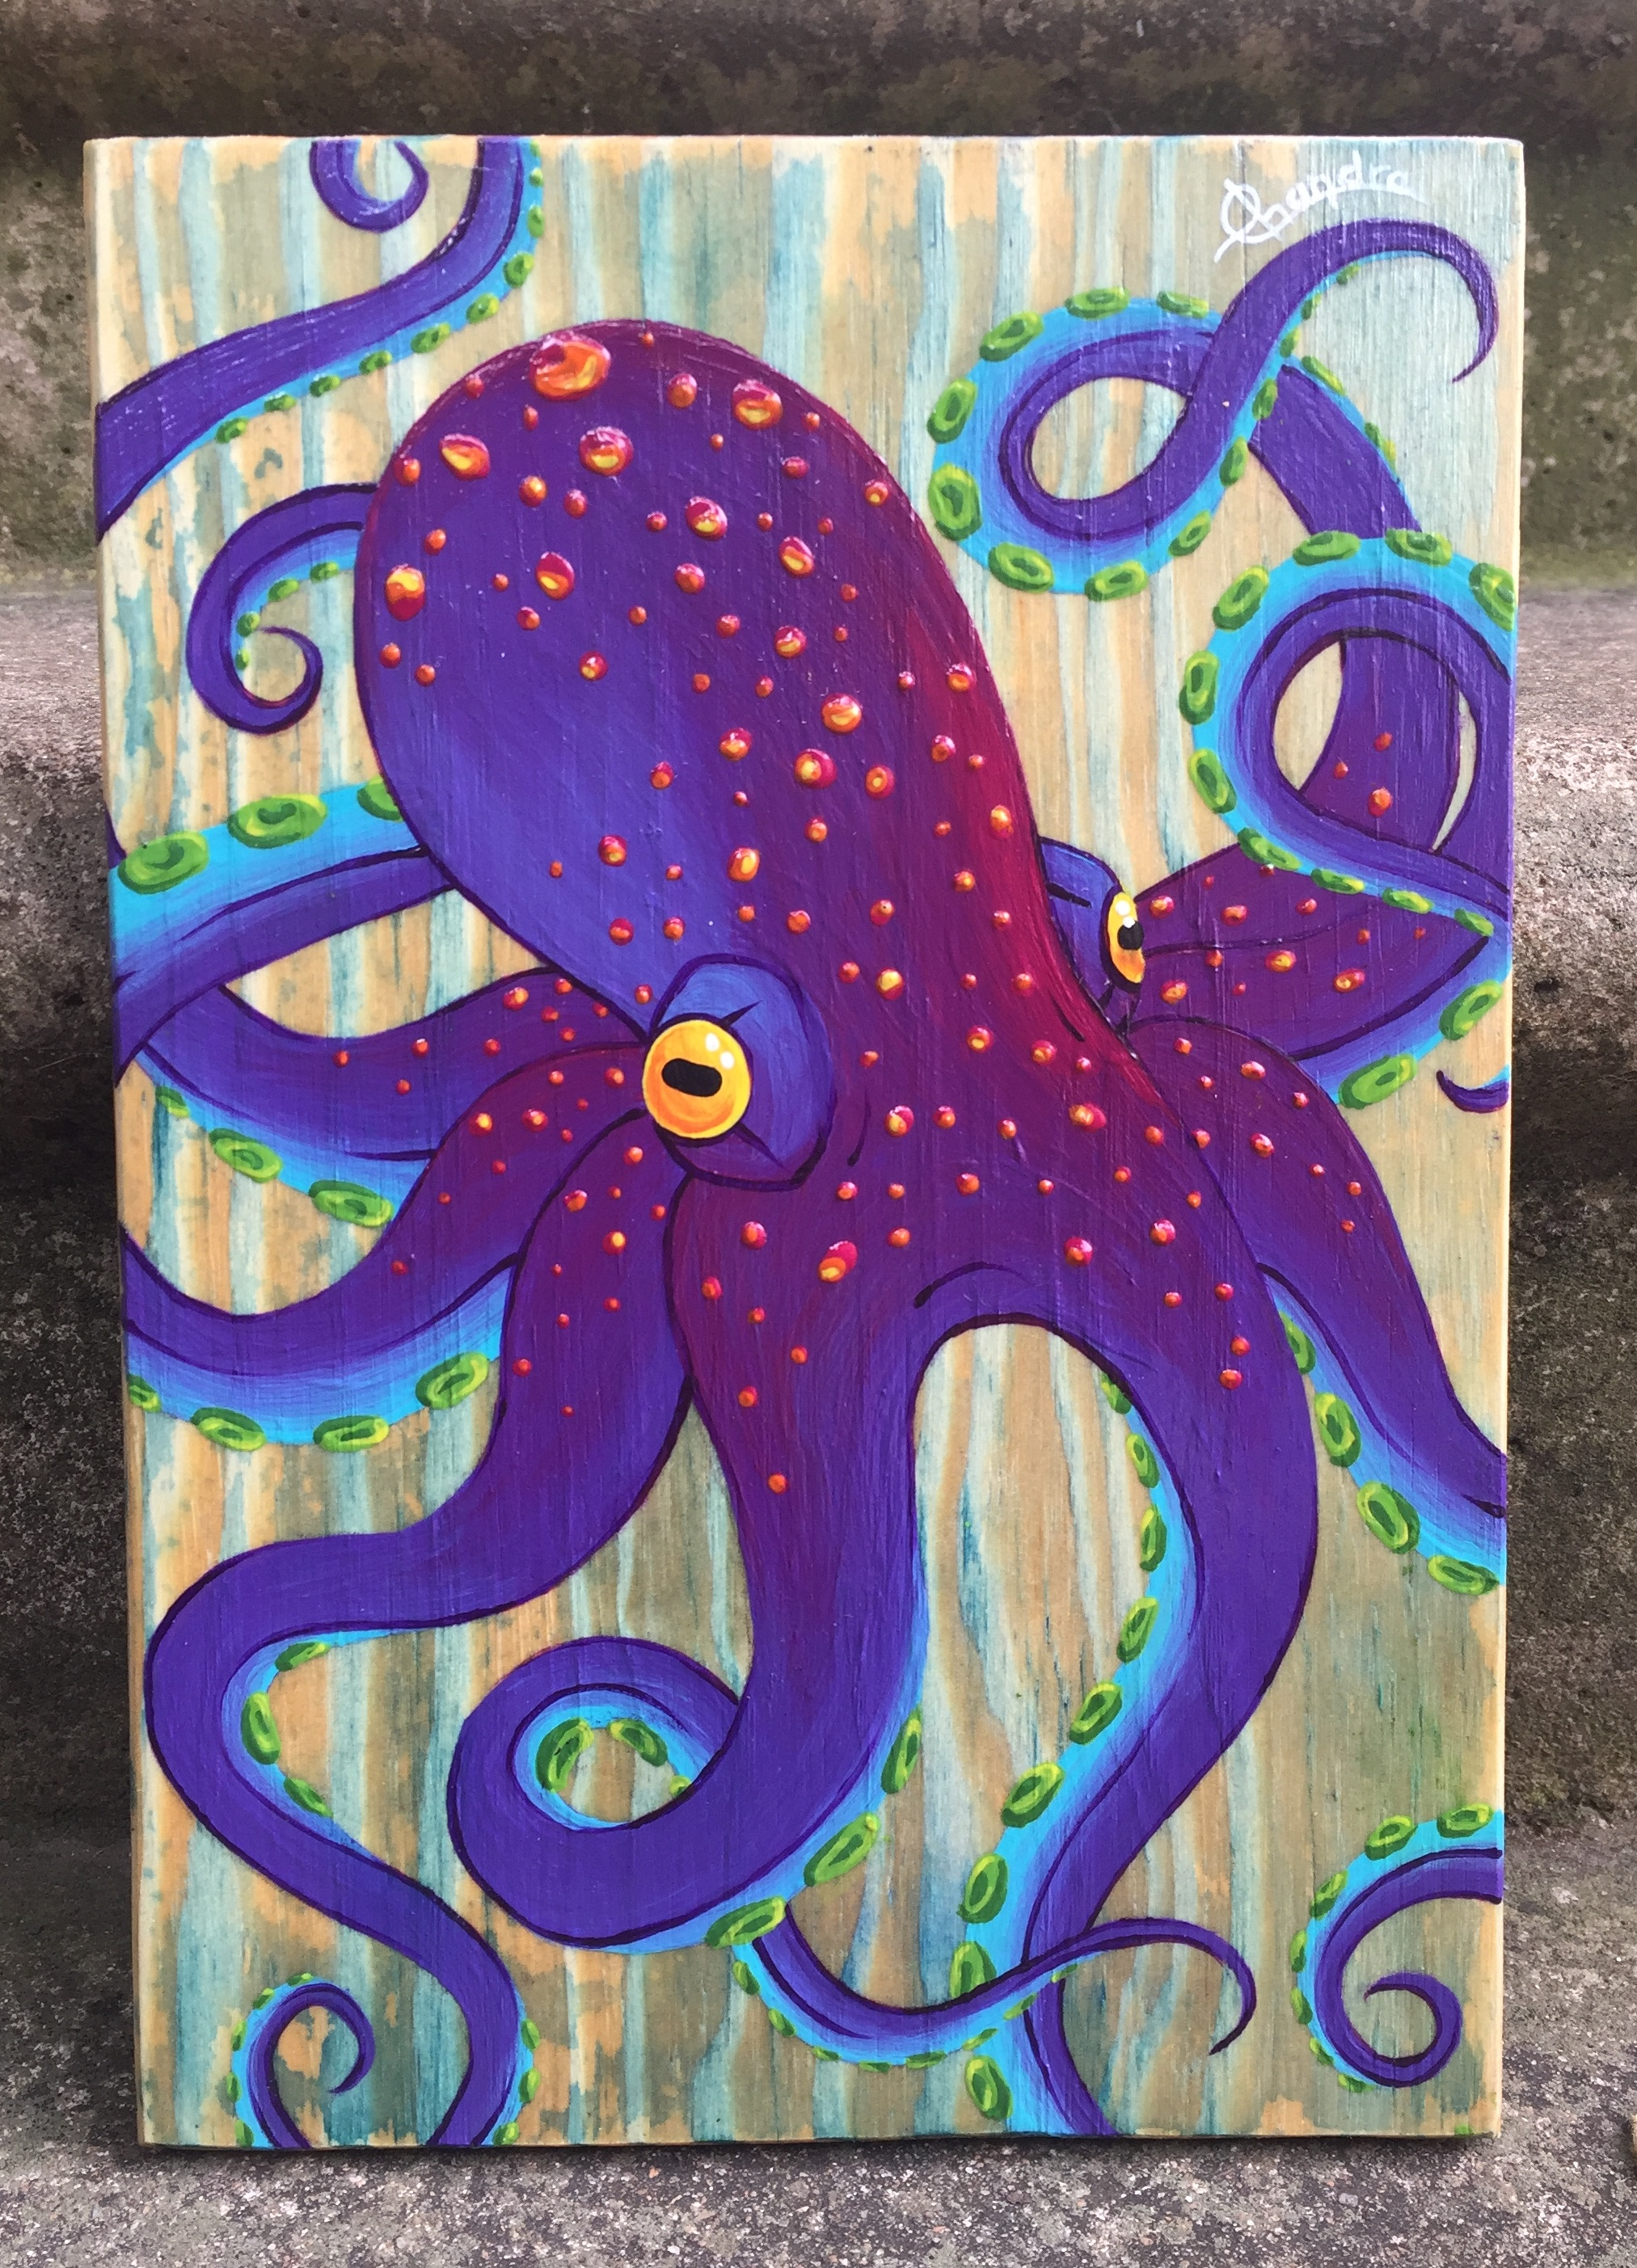 Octopussoir